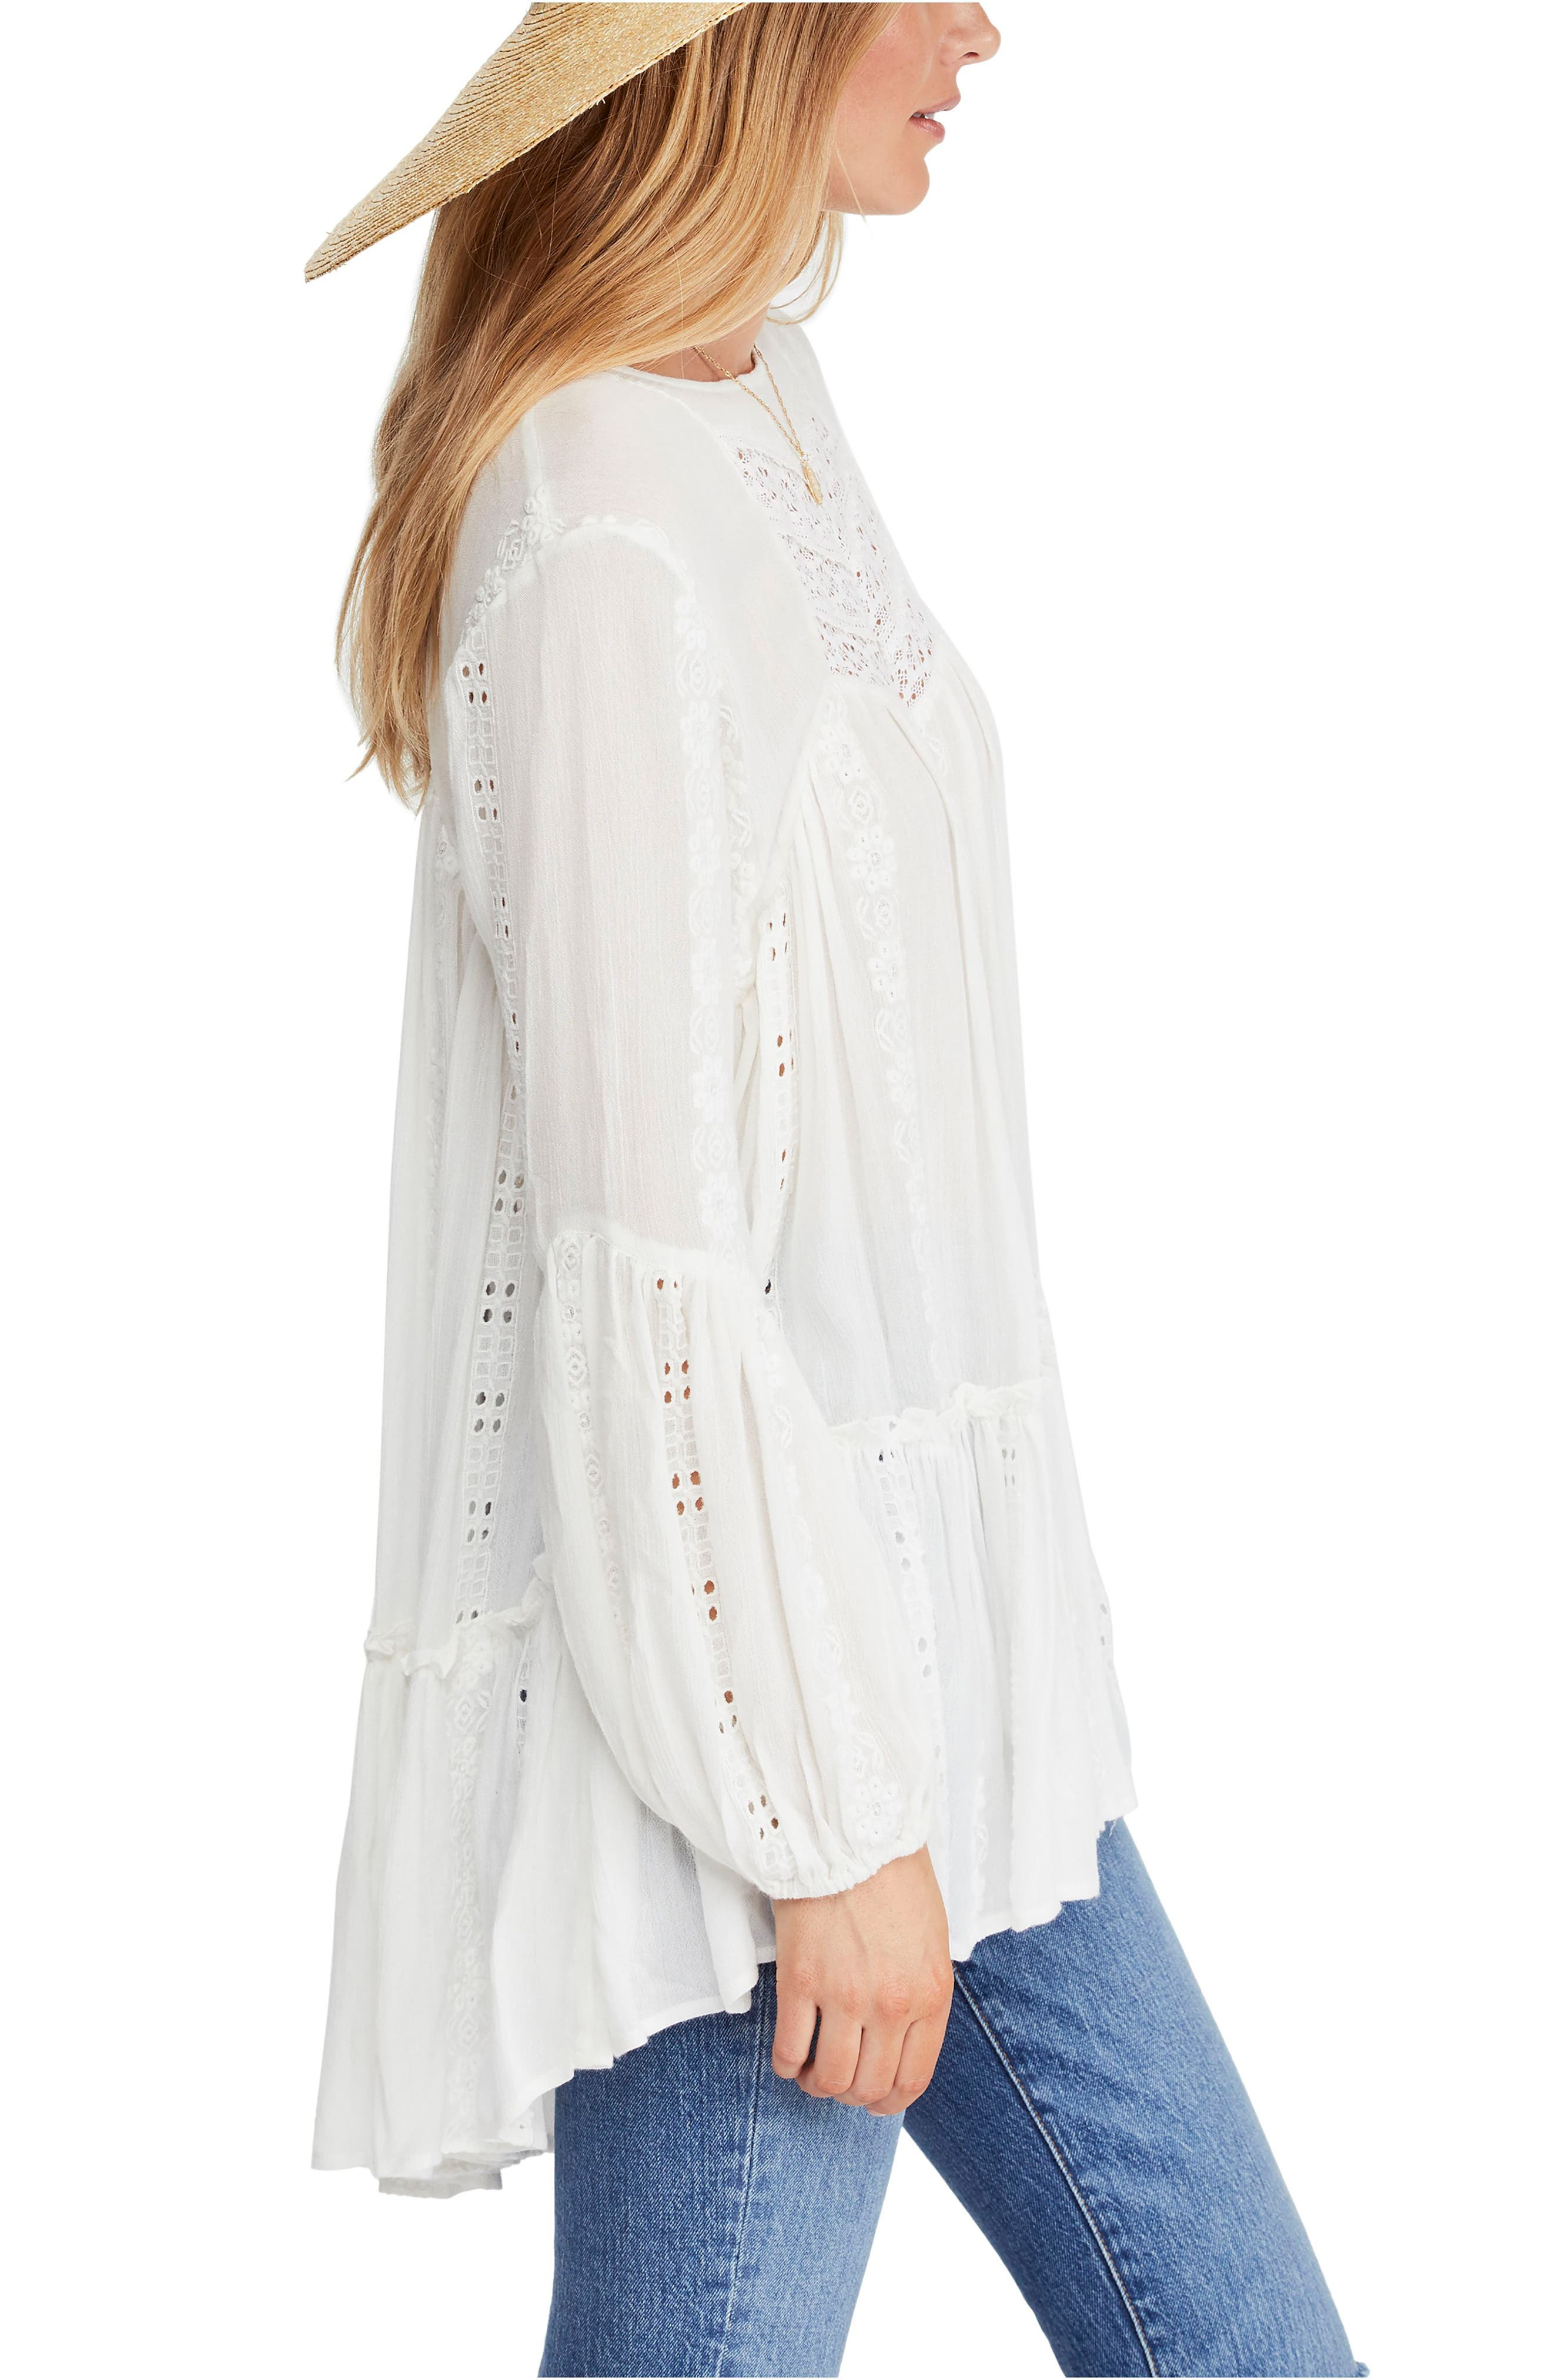 FREE PEOPLE, Kiss Kiss Tunic, Alternate thumbnail 3, color, 103